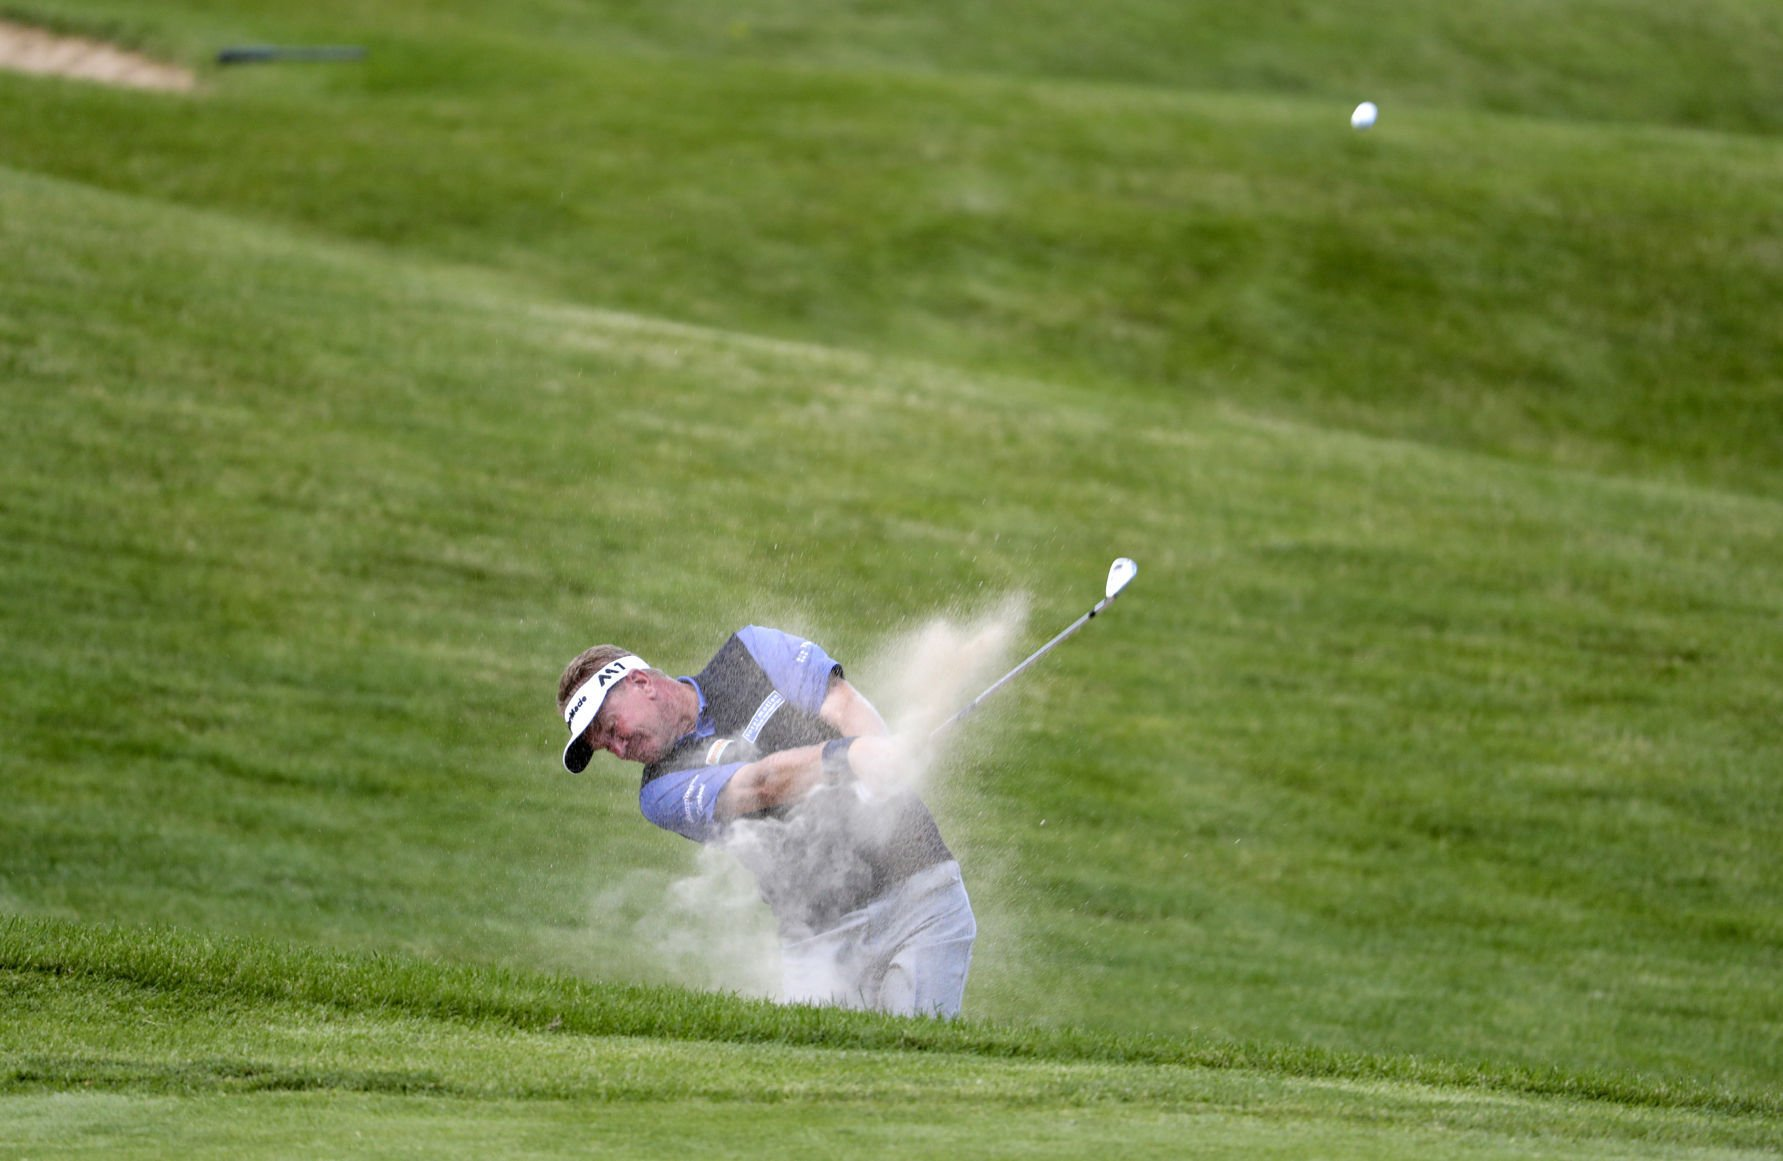 Couples win American Family Insurance Championship